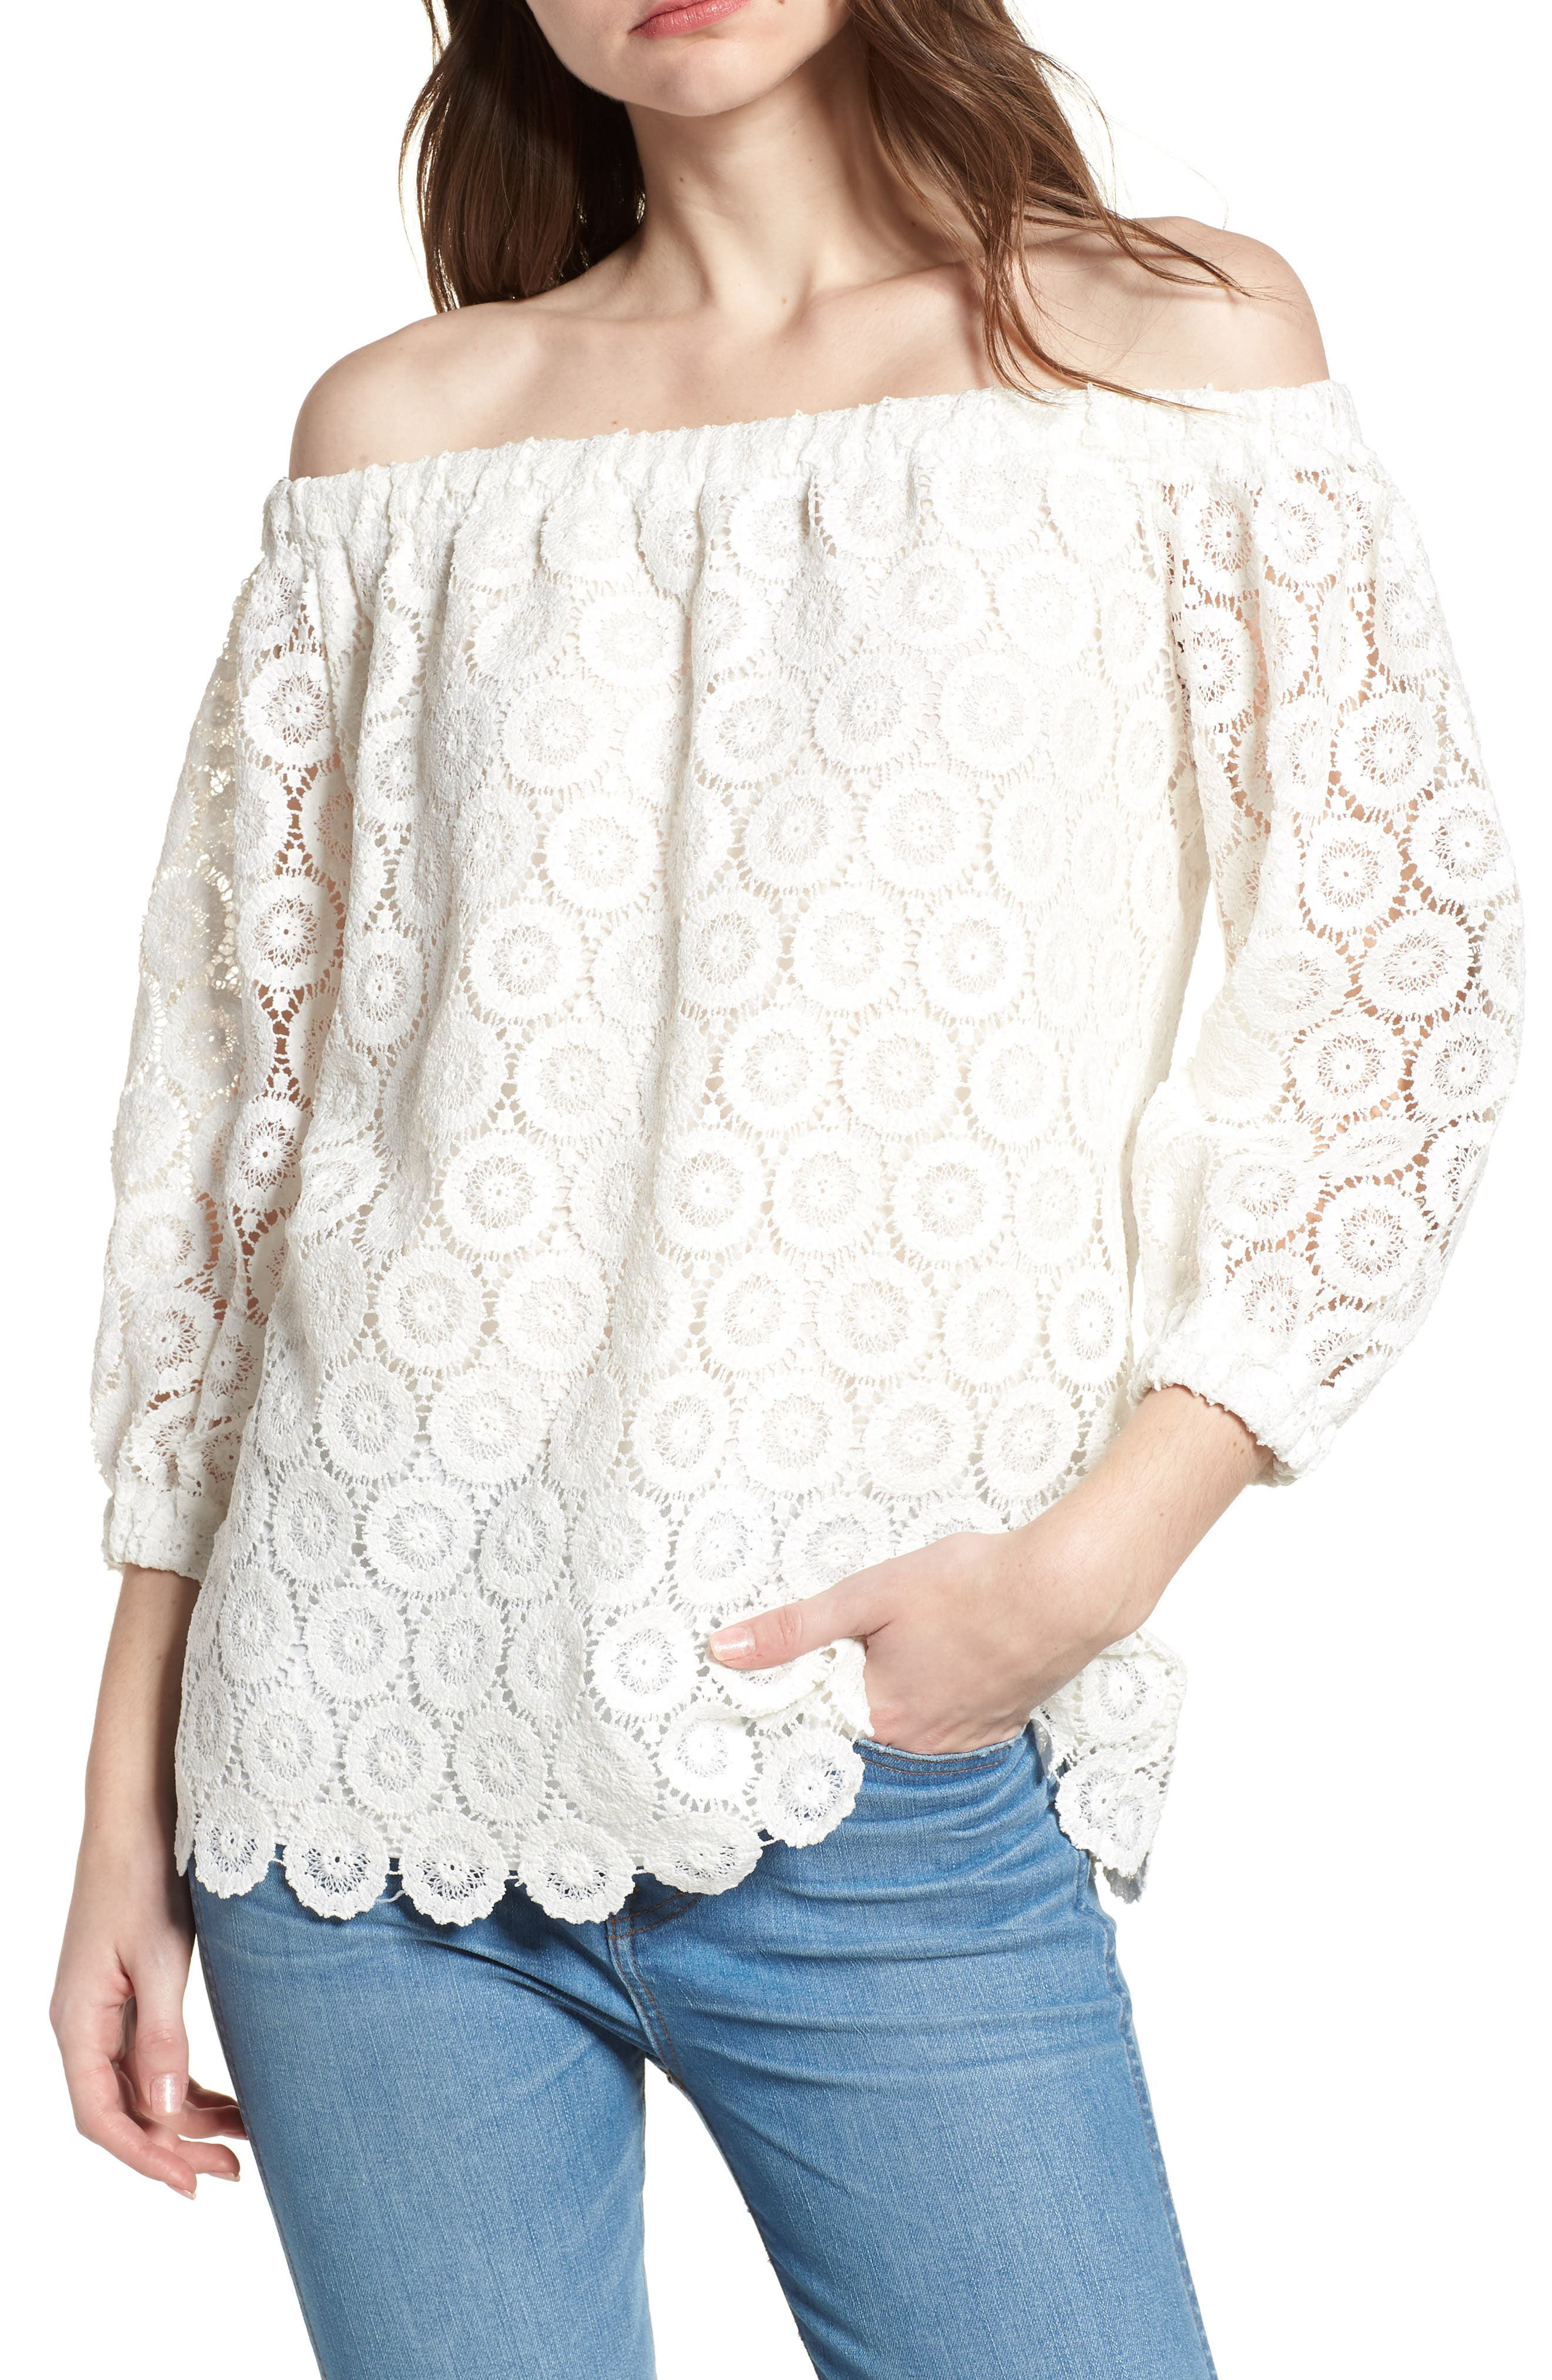 Bishop + Young Karlee Lace Off the Shoulder Top,                         Main,                         color, White